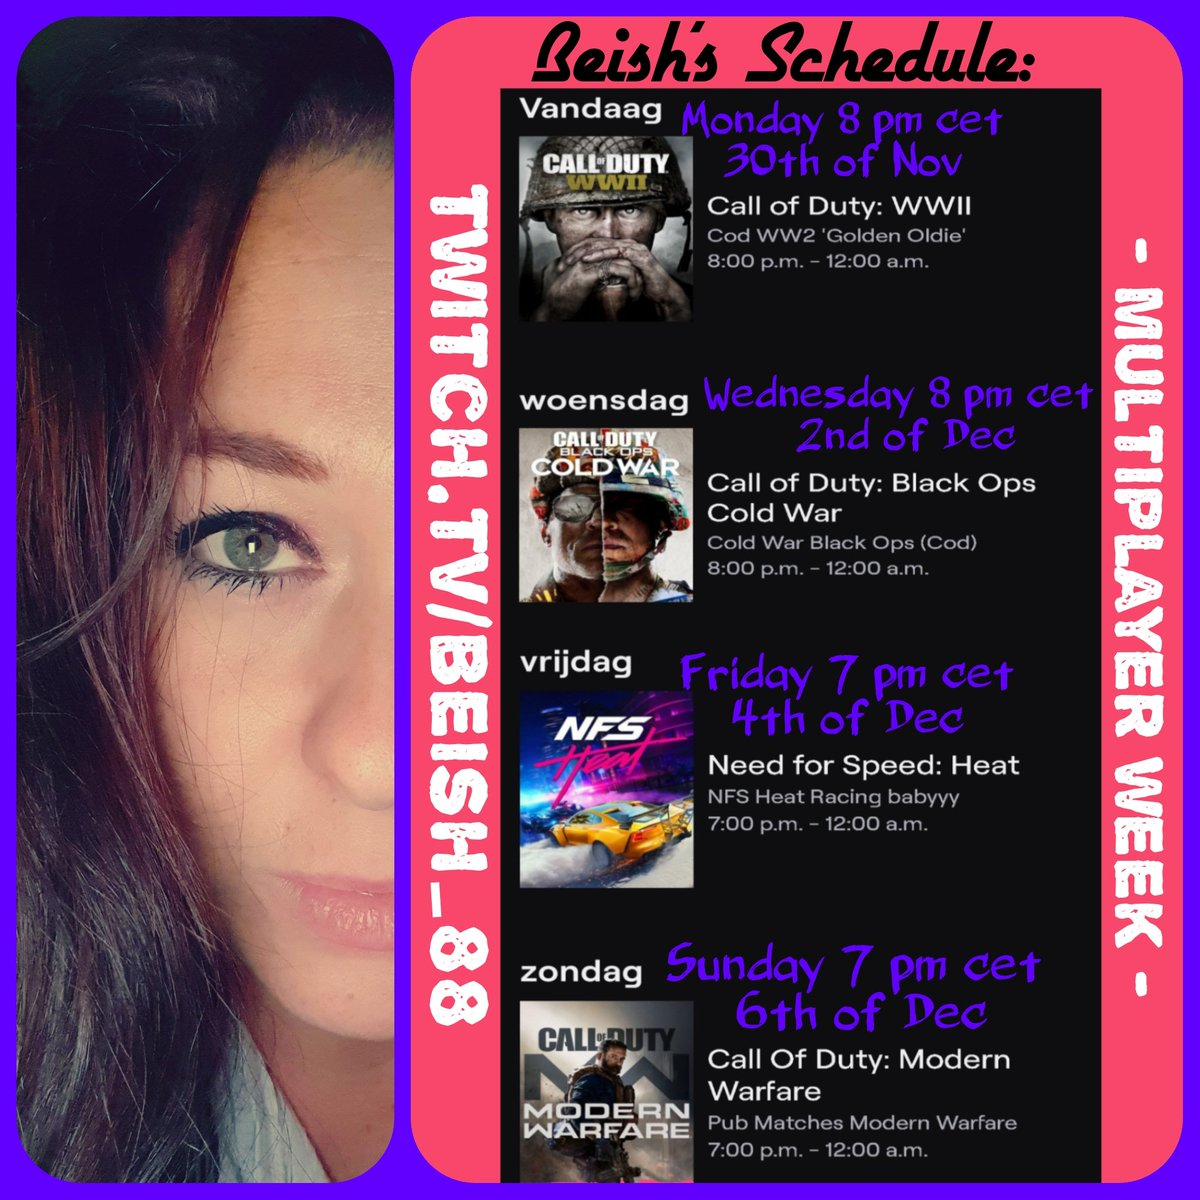 My New Schedule This Week: MULTIPLAYER WEEK // JOIN!!! 》 PLAYING with VIEWERS 《 💜💜💜💜💜💜💜💜💜💜💜 🎮 https://t.co/YVvd6Dd1Fa 🎮  #callofduty #needforspeed #codww2 #coldwar #multiplayer  #modernwarfare #twitchlive #schedule #twitchtv #girlgamer #girlstreamer #ps4 #games https://t.co/I3Dvi5Lgpg